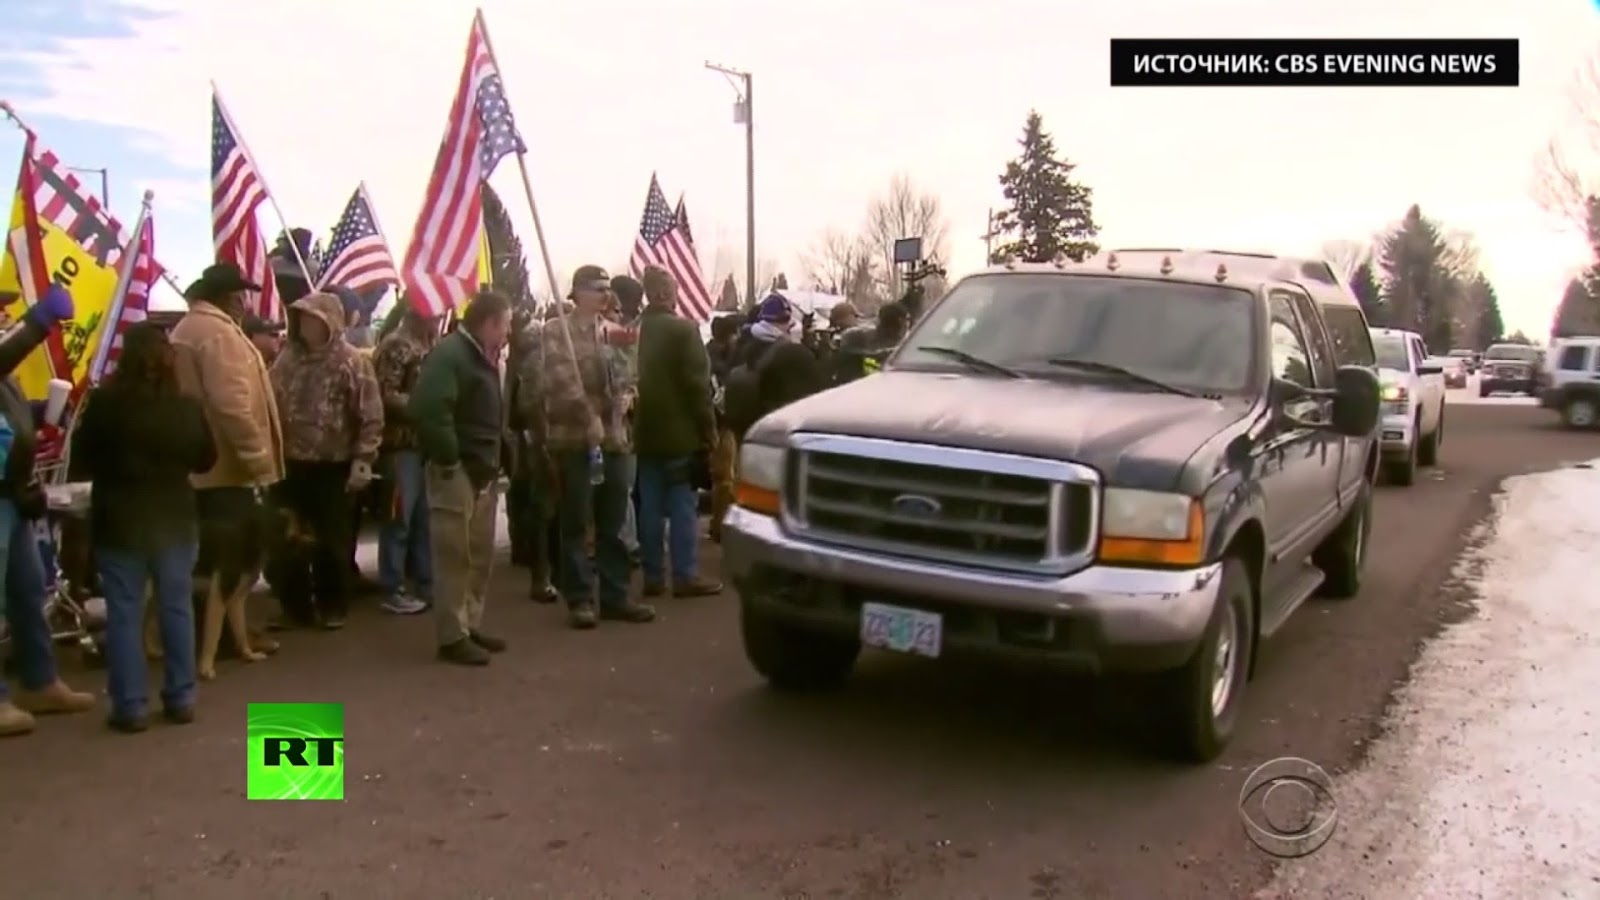 Russian media predicted the collapse of the USA during the farmers' protests in Oregon. Its messaging for the events was similar to those which is employed to describe the Euromaidan revolution in Ukraine.